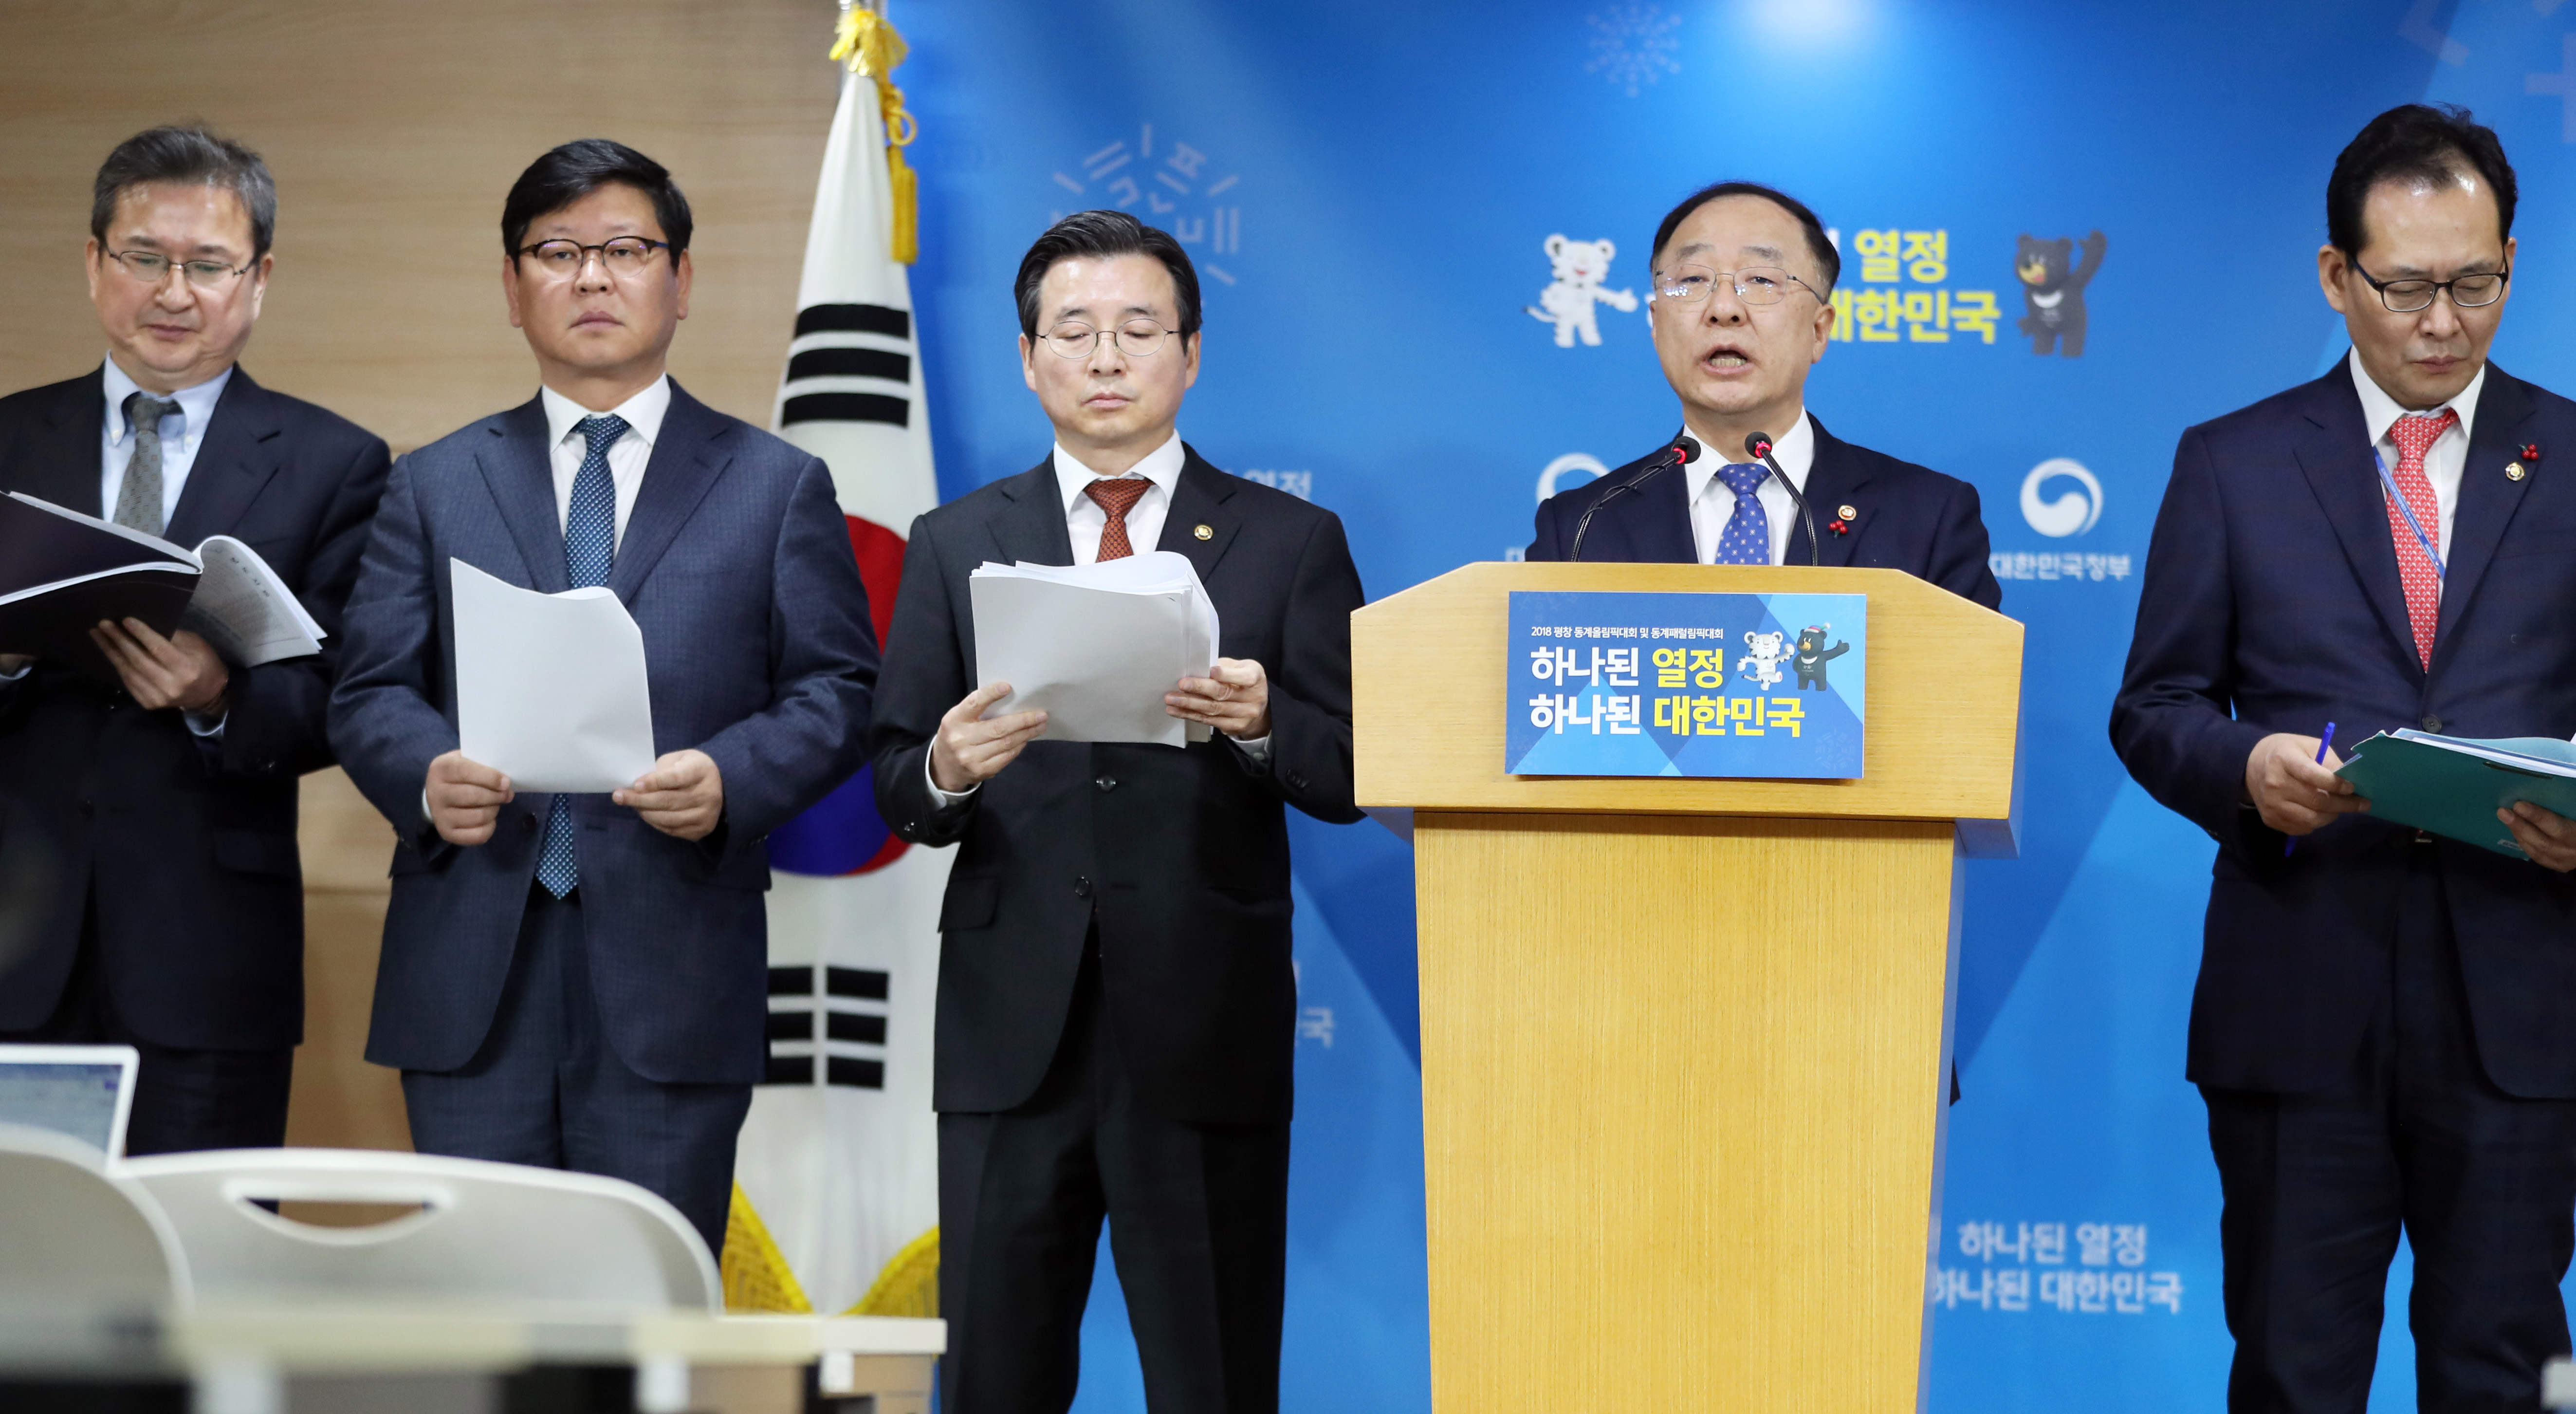 South Korean government decides to introduce real-name system for cryptocurrency trading, Sejong, Korea - 28 Dec 2017